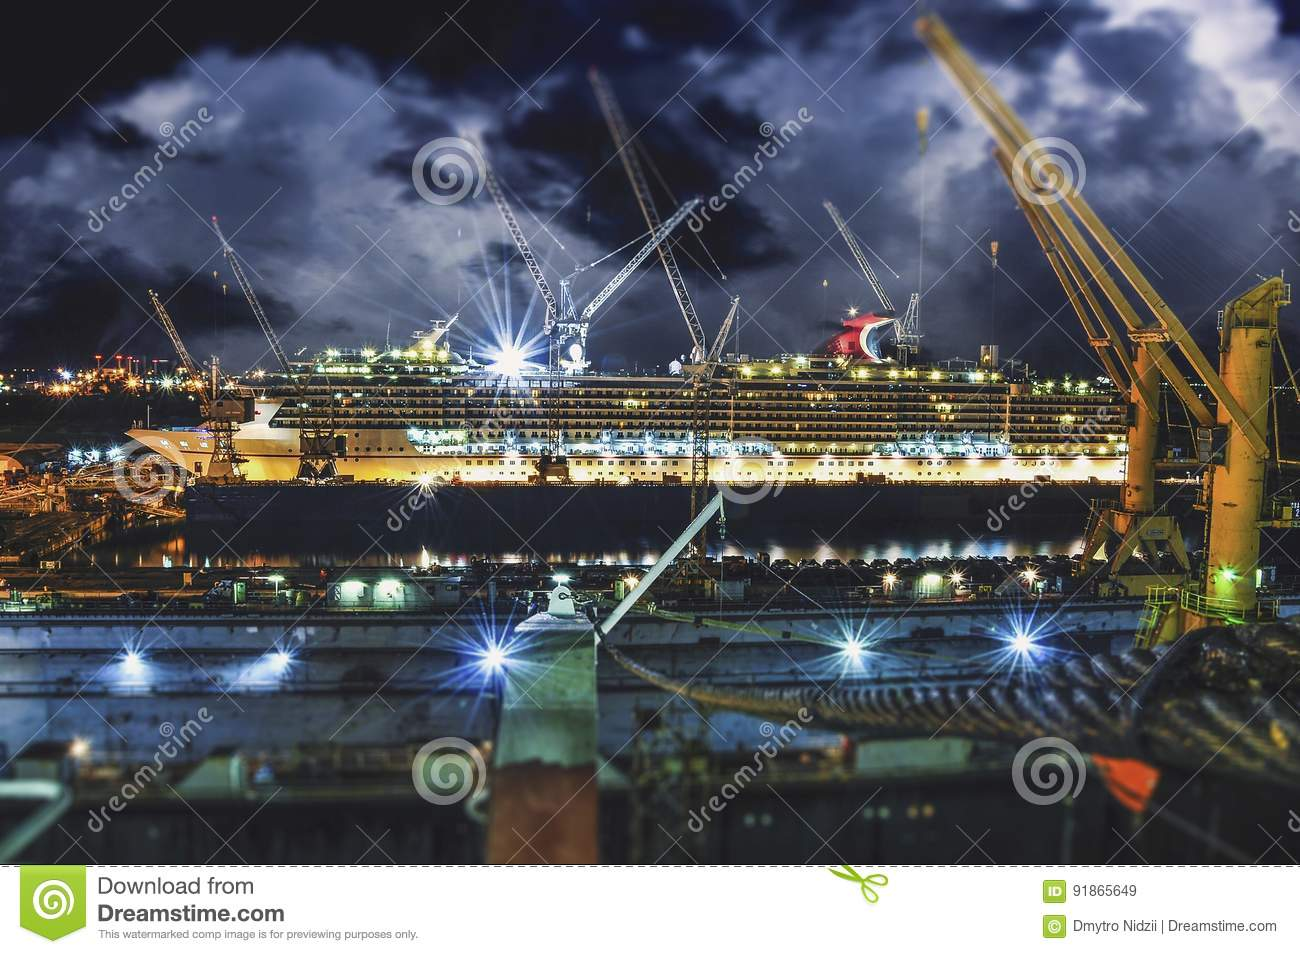 Cruise ship on dry dock